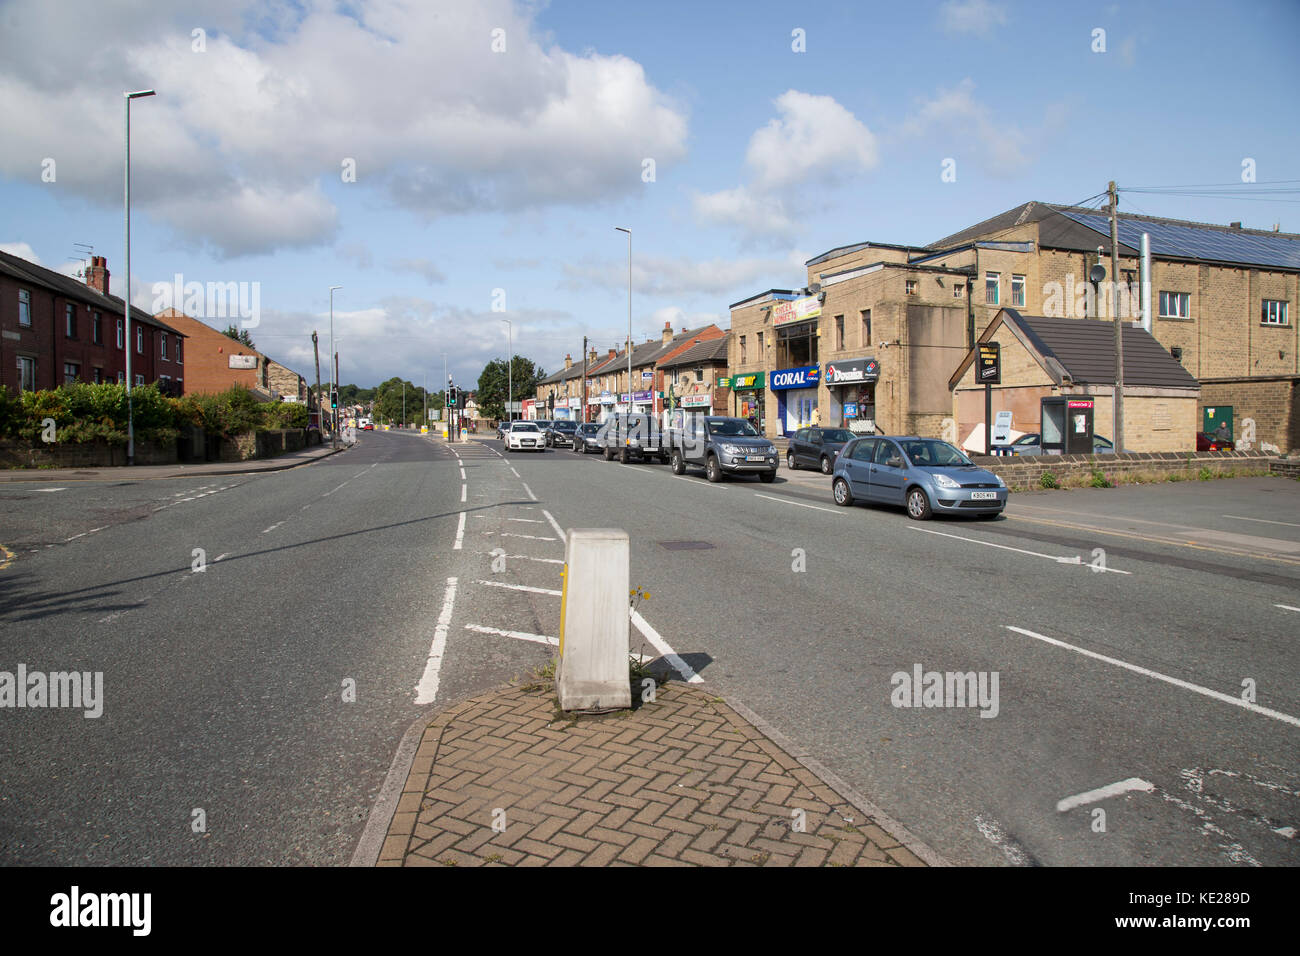 View of the district of Waterloo in Huddersfield, West Yorkshire - Stock Image